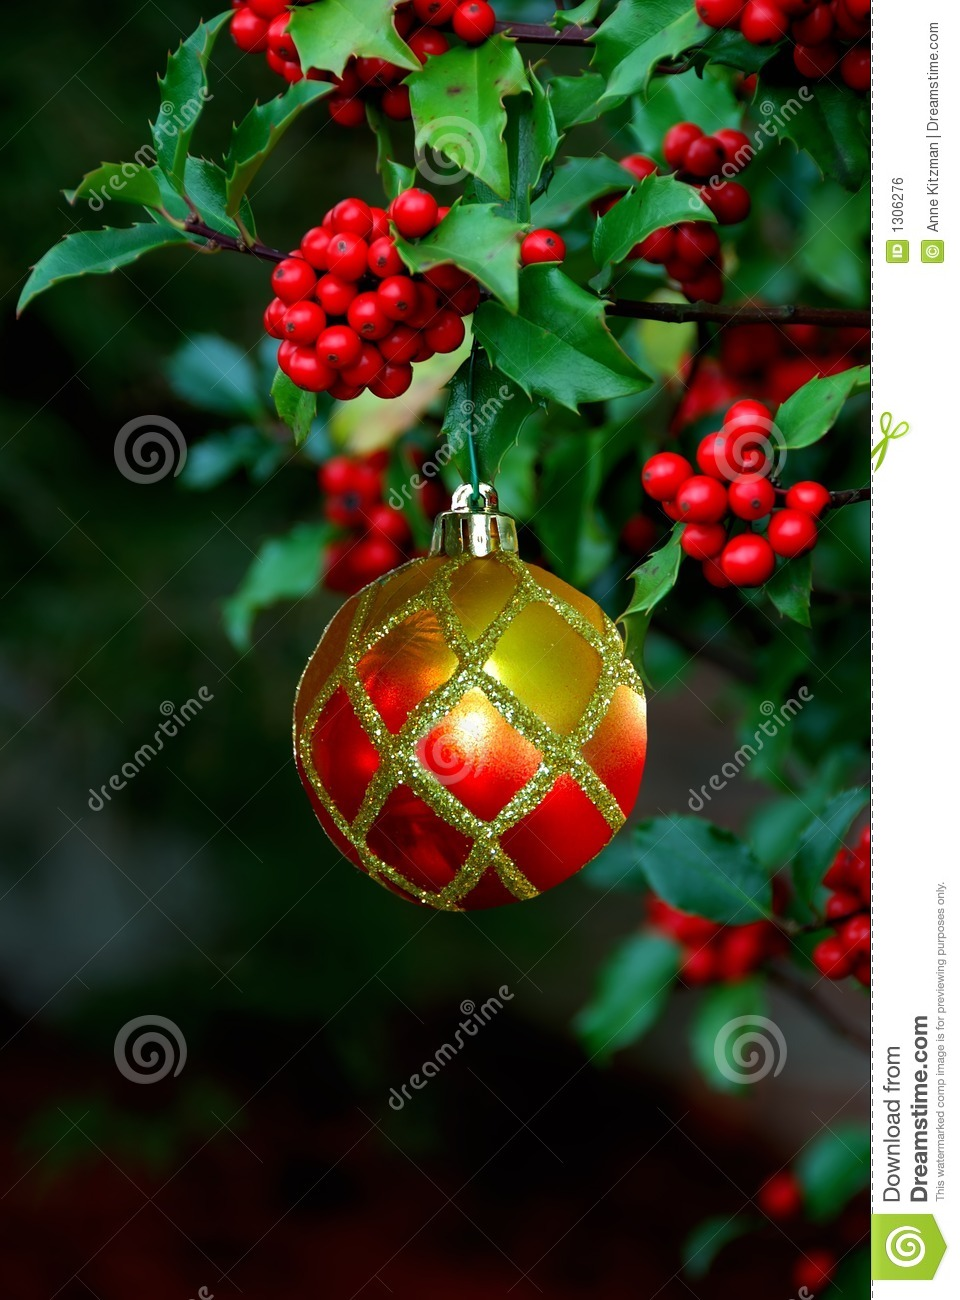 Berries Christmas Holly Ornament